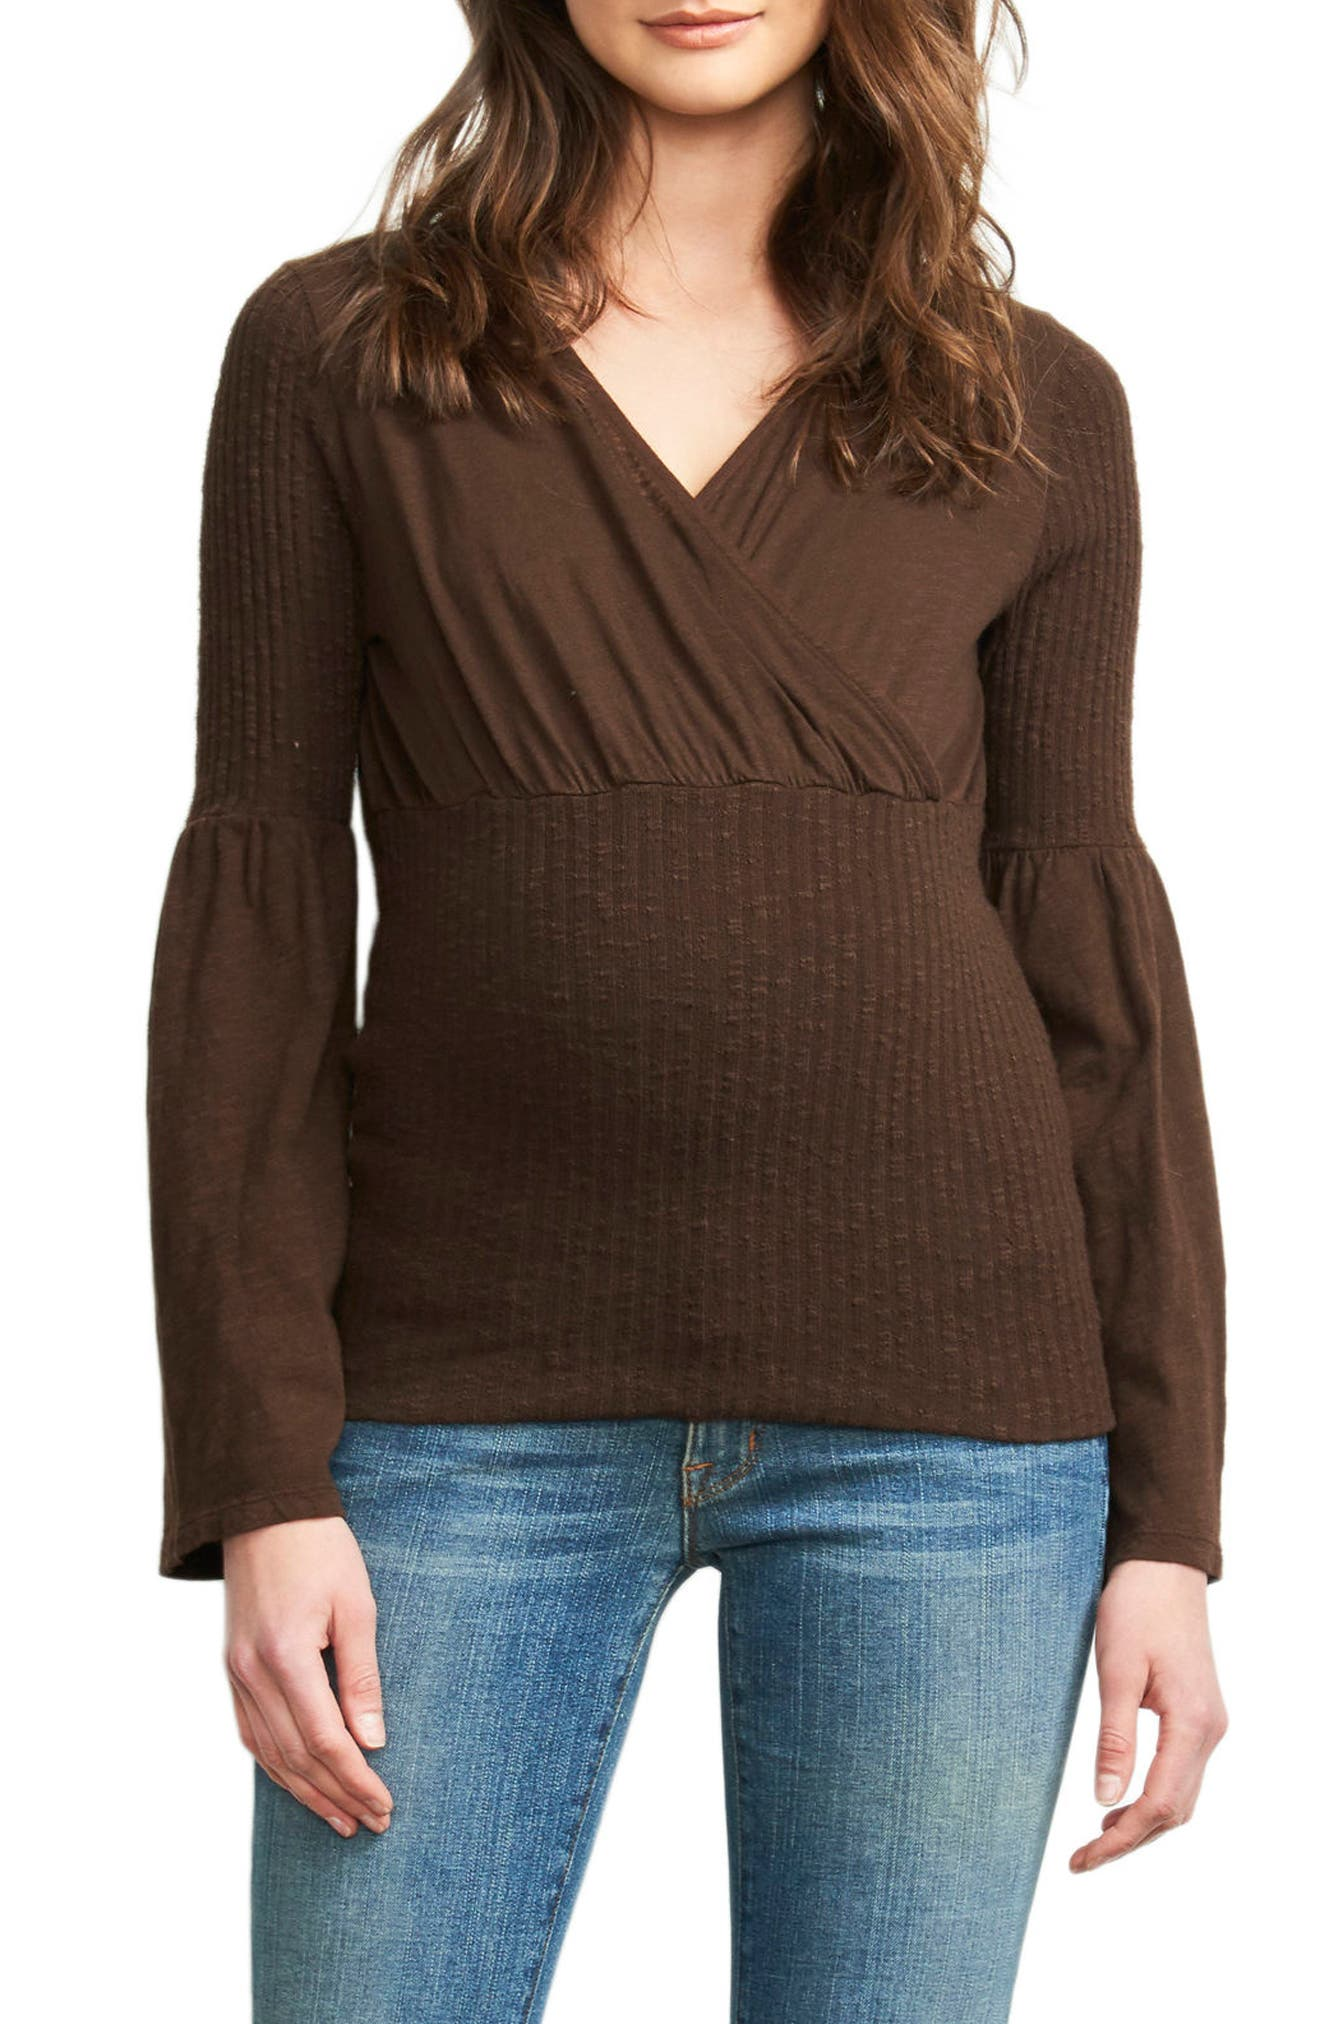 Main Image - Maternal American Belly Hug Knit Maternity Top